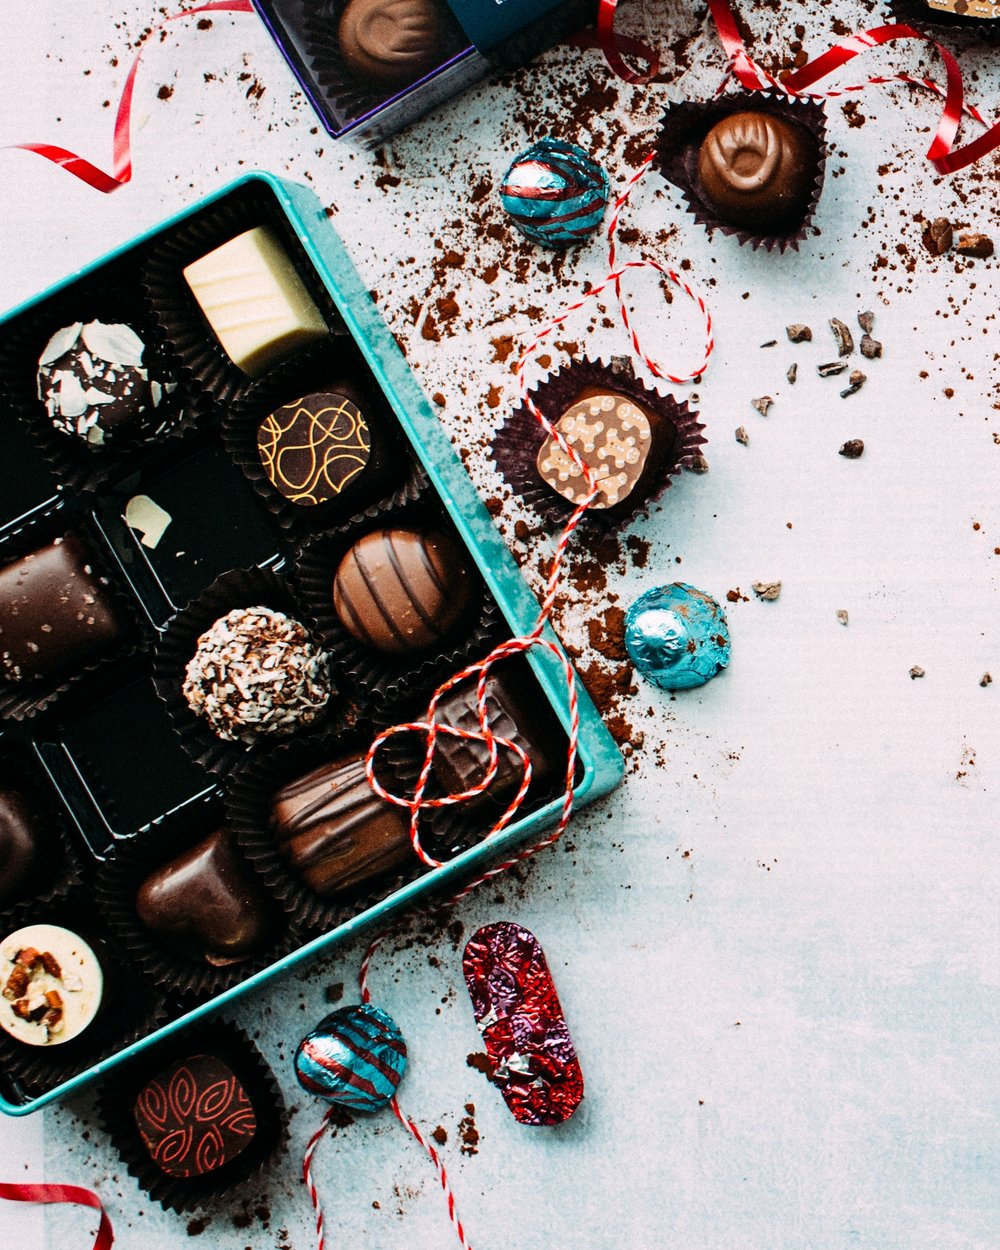 Top tips for making Christmas healthier - Have a protein-rich breakfast!Stay hydratedEat mindfully (and slower than everyone else)Put healthy nibbles out along with the naughtier onesPause and breathe - do you really need another chocolate?